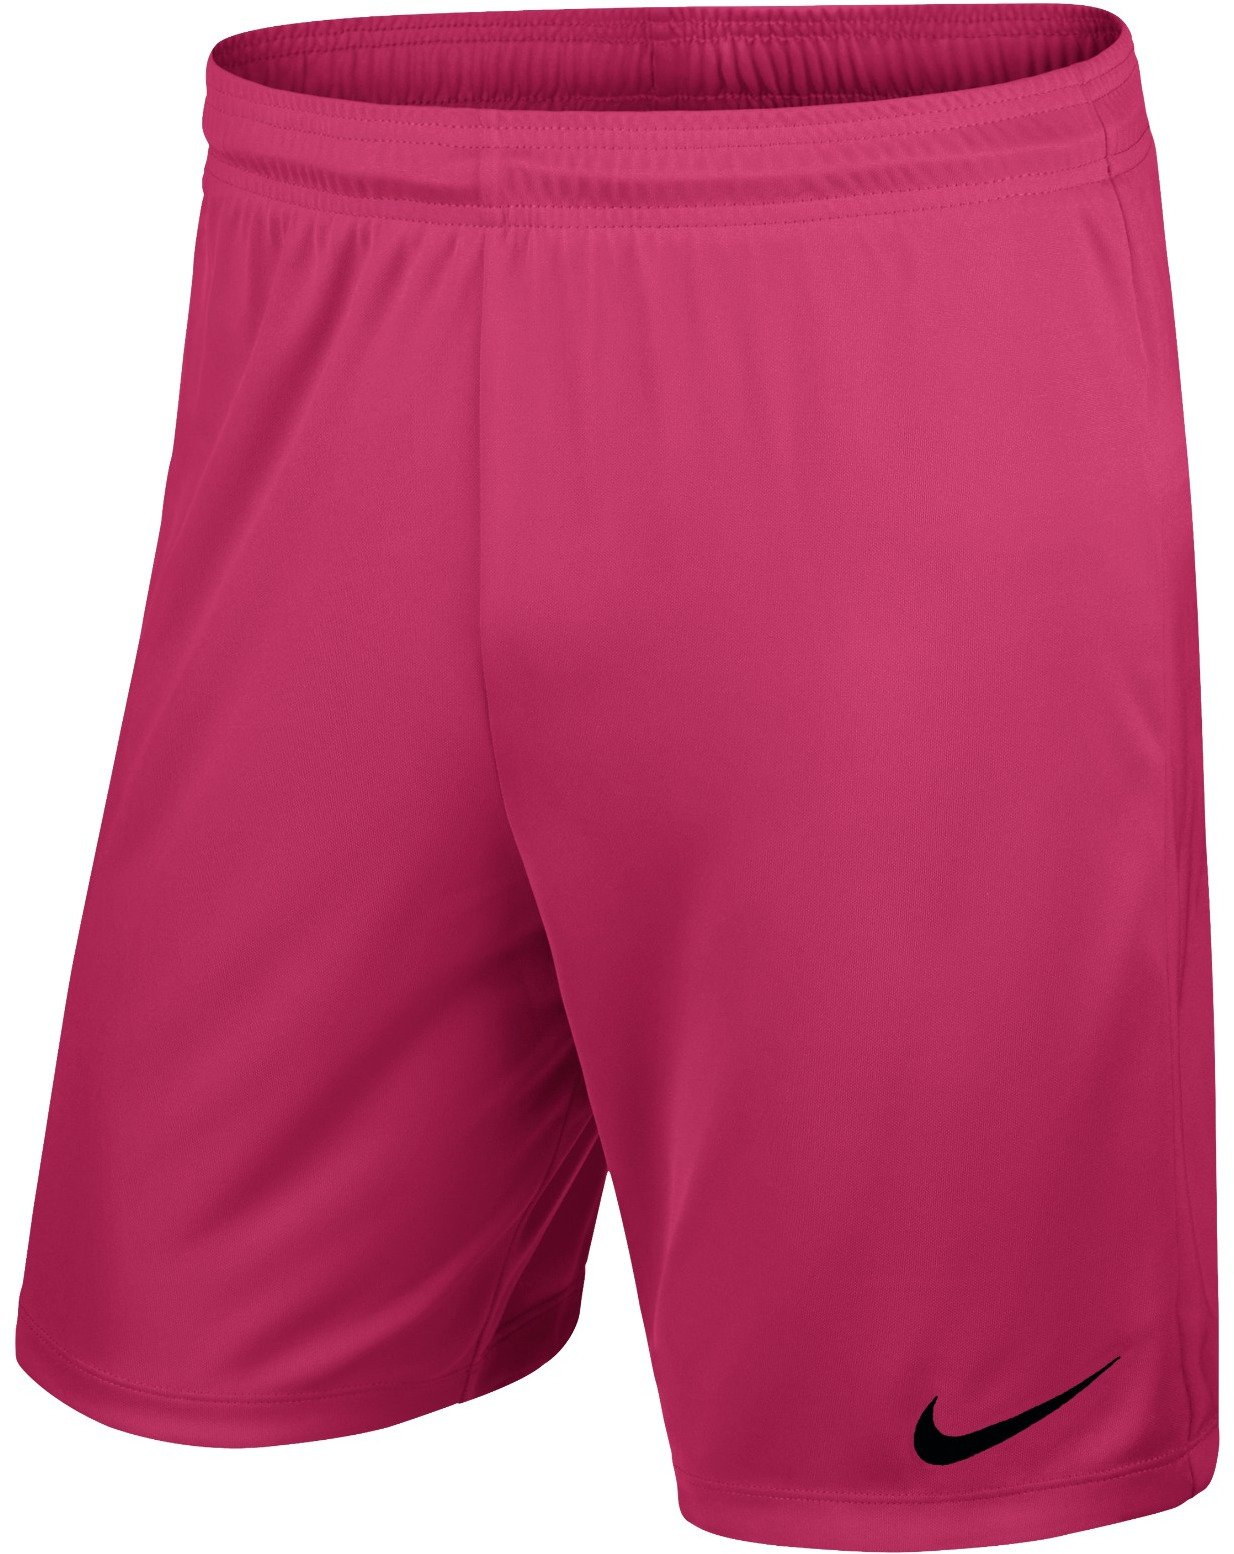 Pantalons courts Nike PARK II KNIT SHORT NB